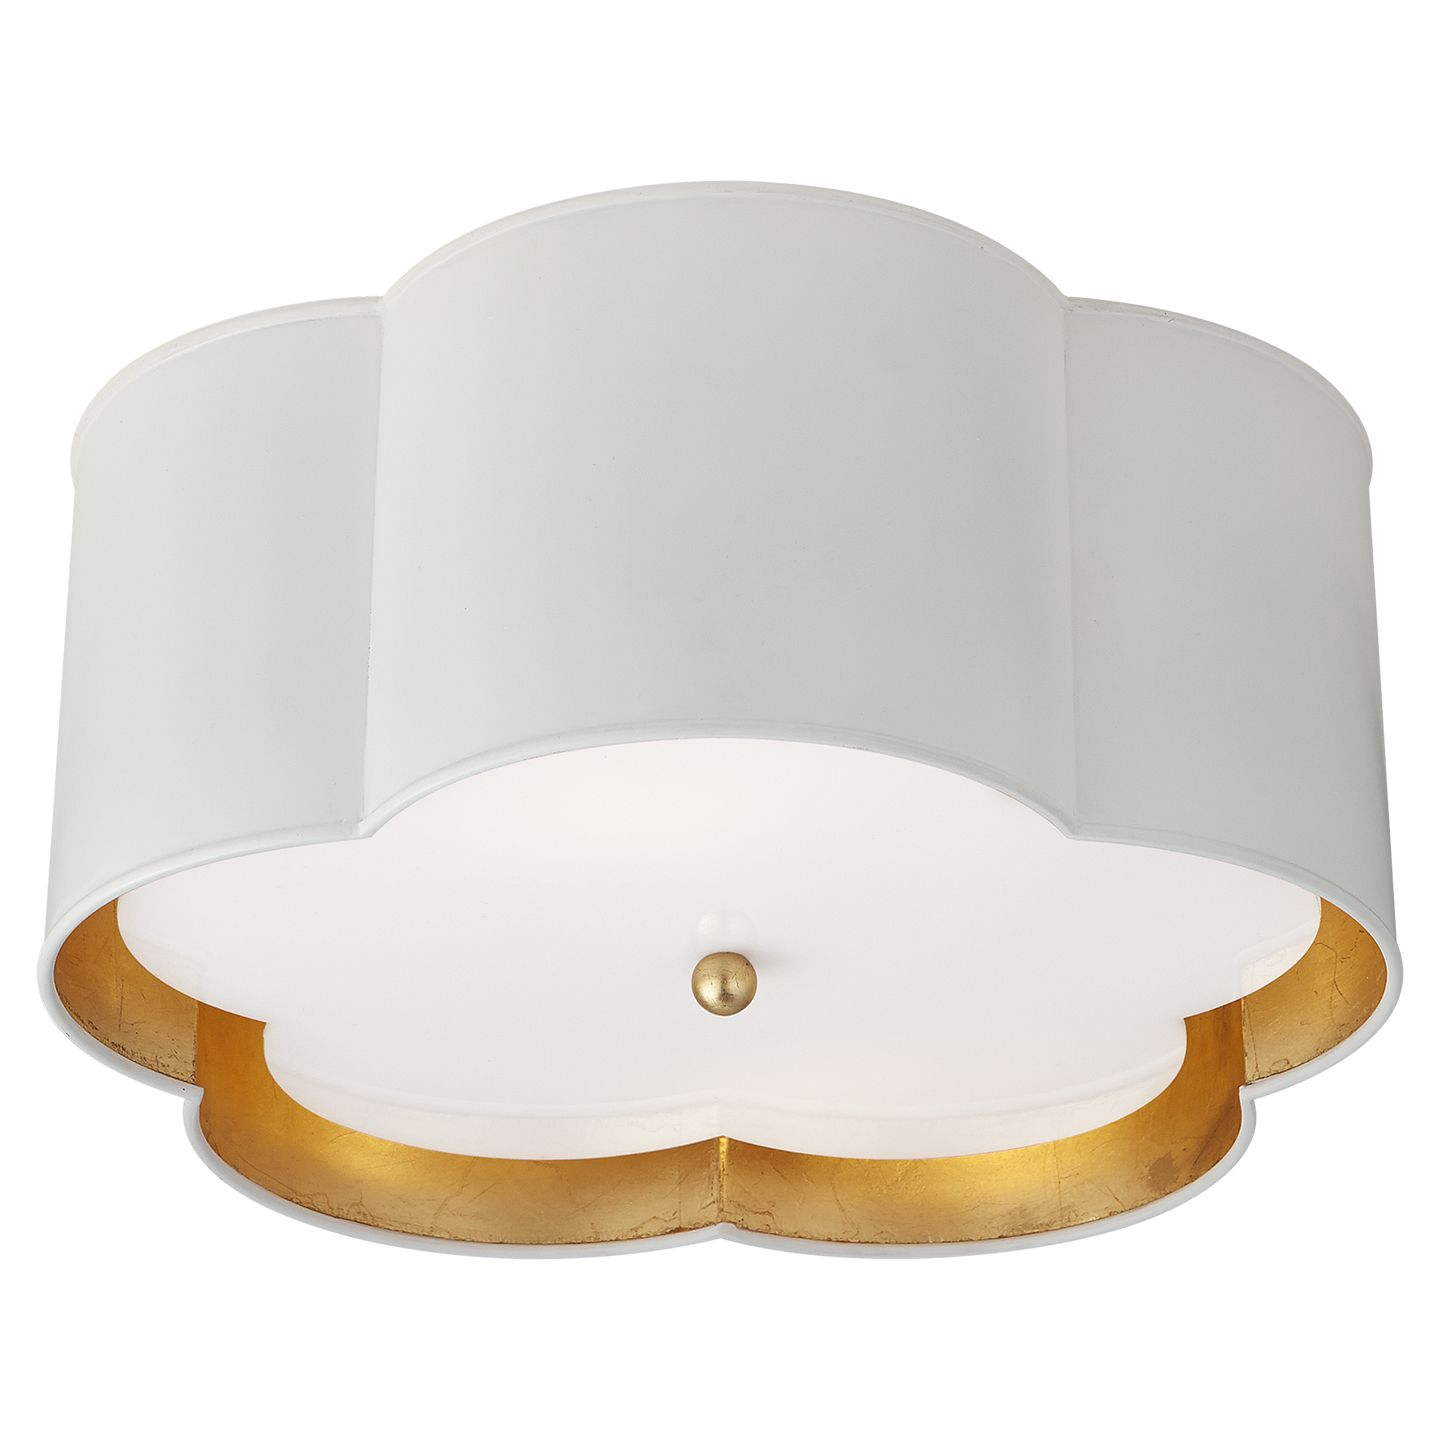 Visual Comfort Ks 4117wht G Fa Kate Spade New York Casual Bryce Medium Flush Mount In White And Gild With Frosted Acryl Visual Comfort Flush Mount Flush Mounts